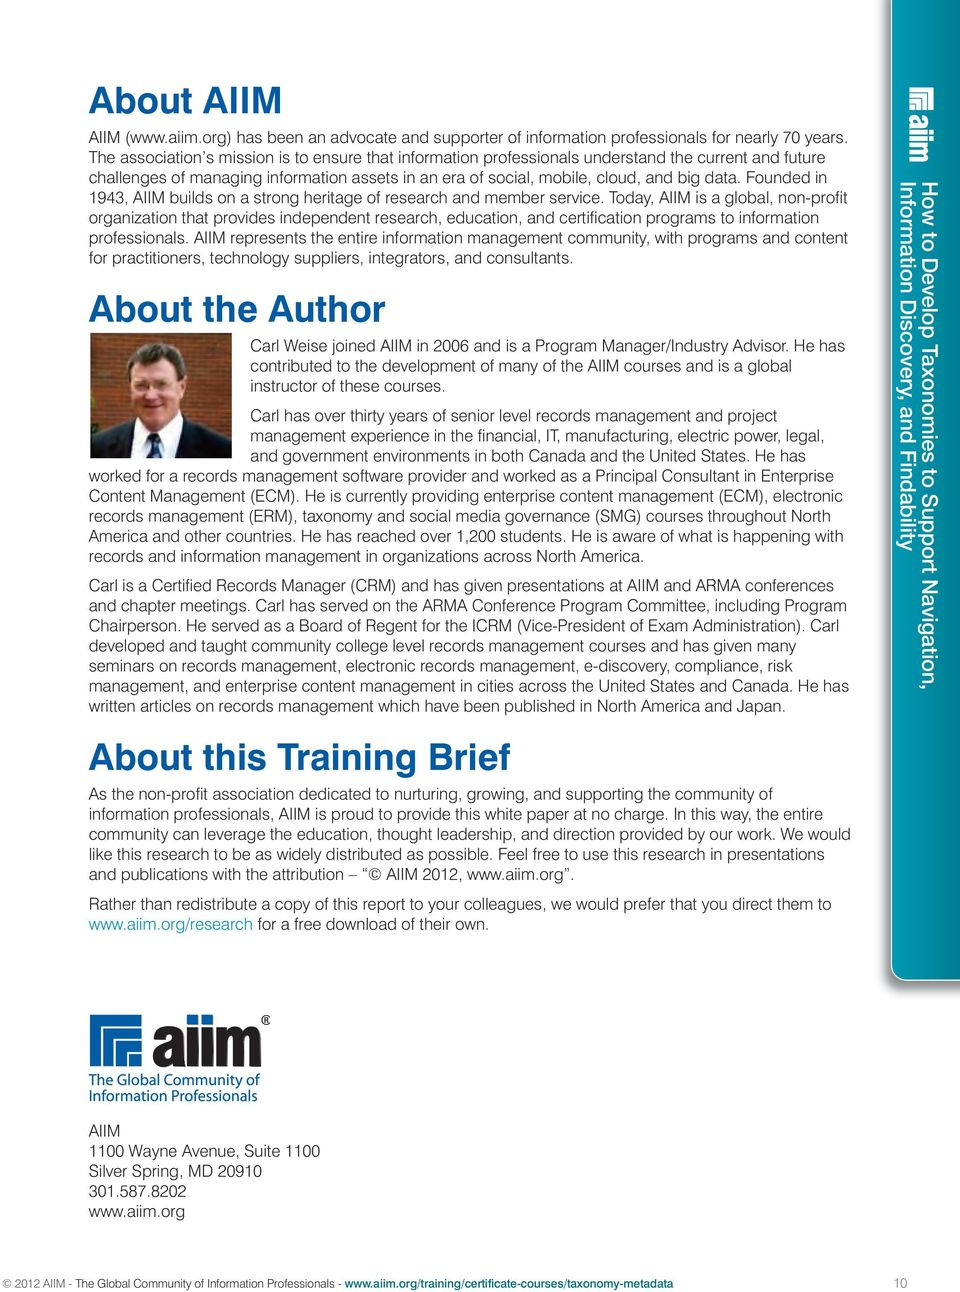 Founded in 1943, AIIM builds on a strong heritage of research and member service.